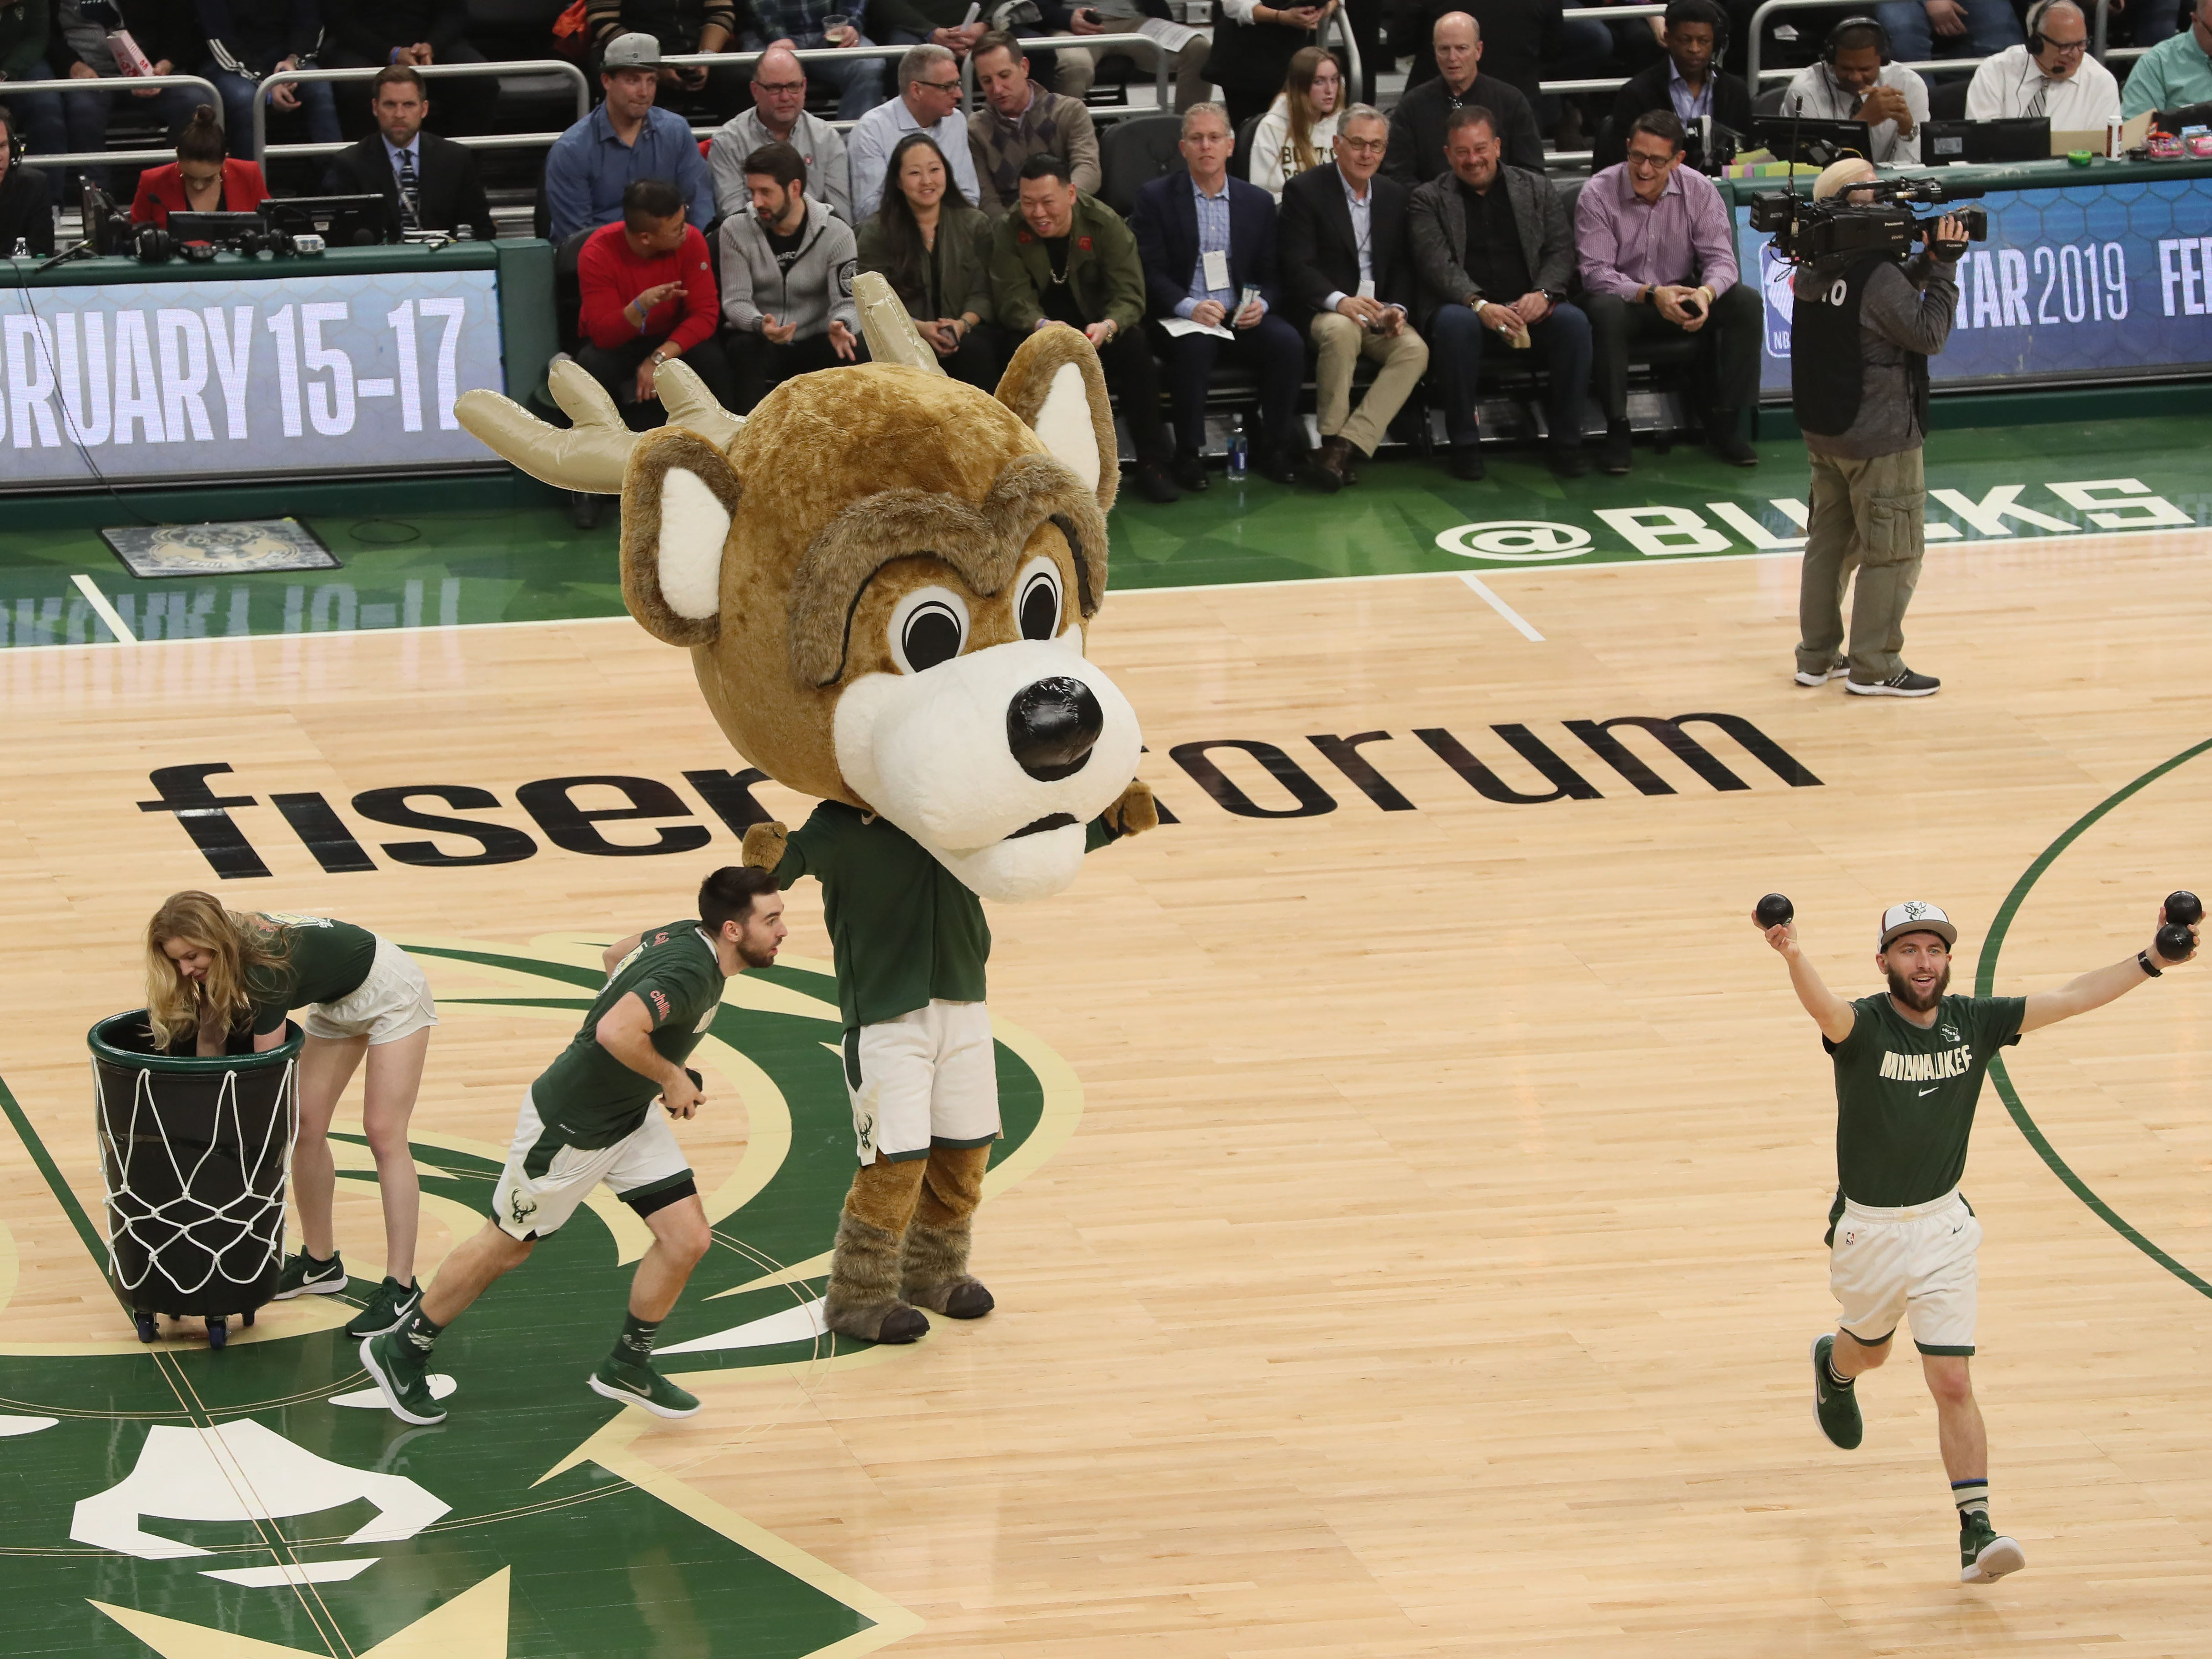 Bango, wearing an oversized head, leads the throwing of T-shirts into the crowd.